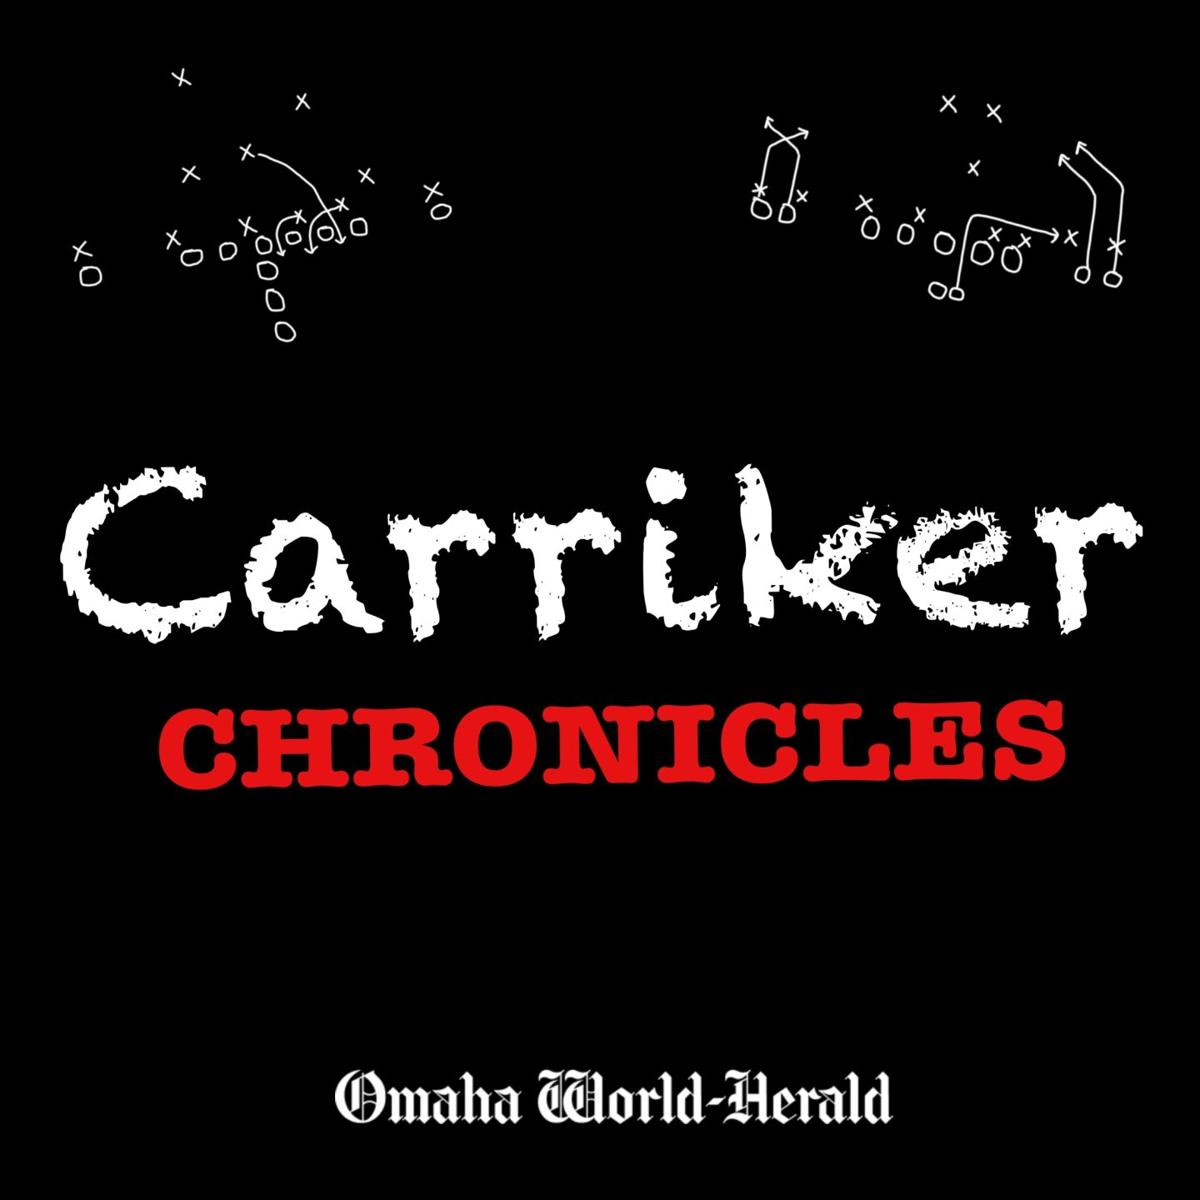 Carriker Chronicles: What a win over Michigan would mean for Nebraska